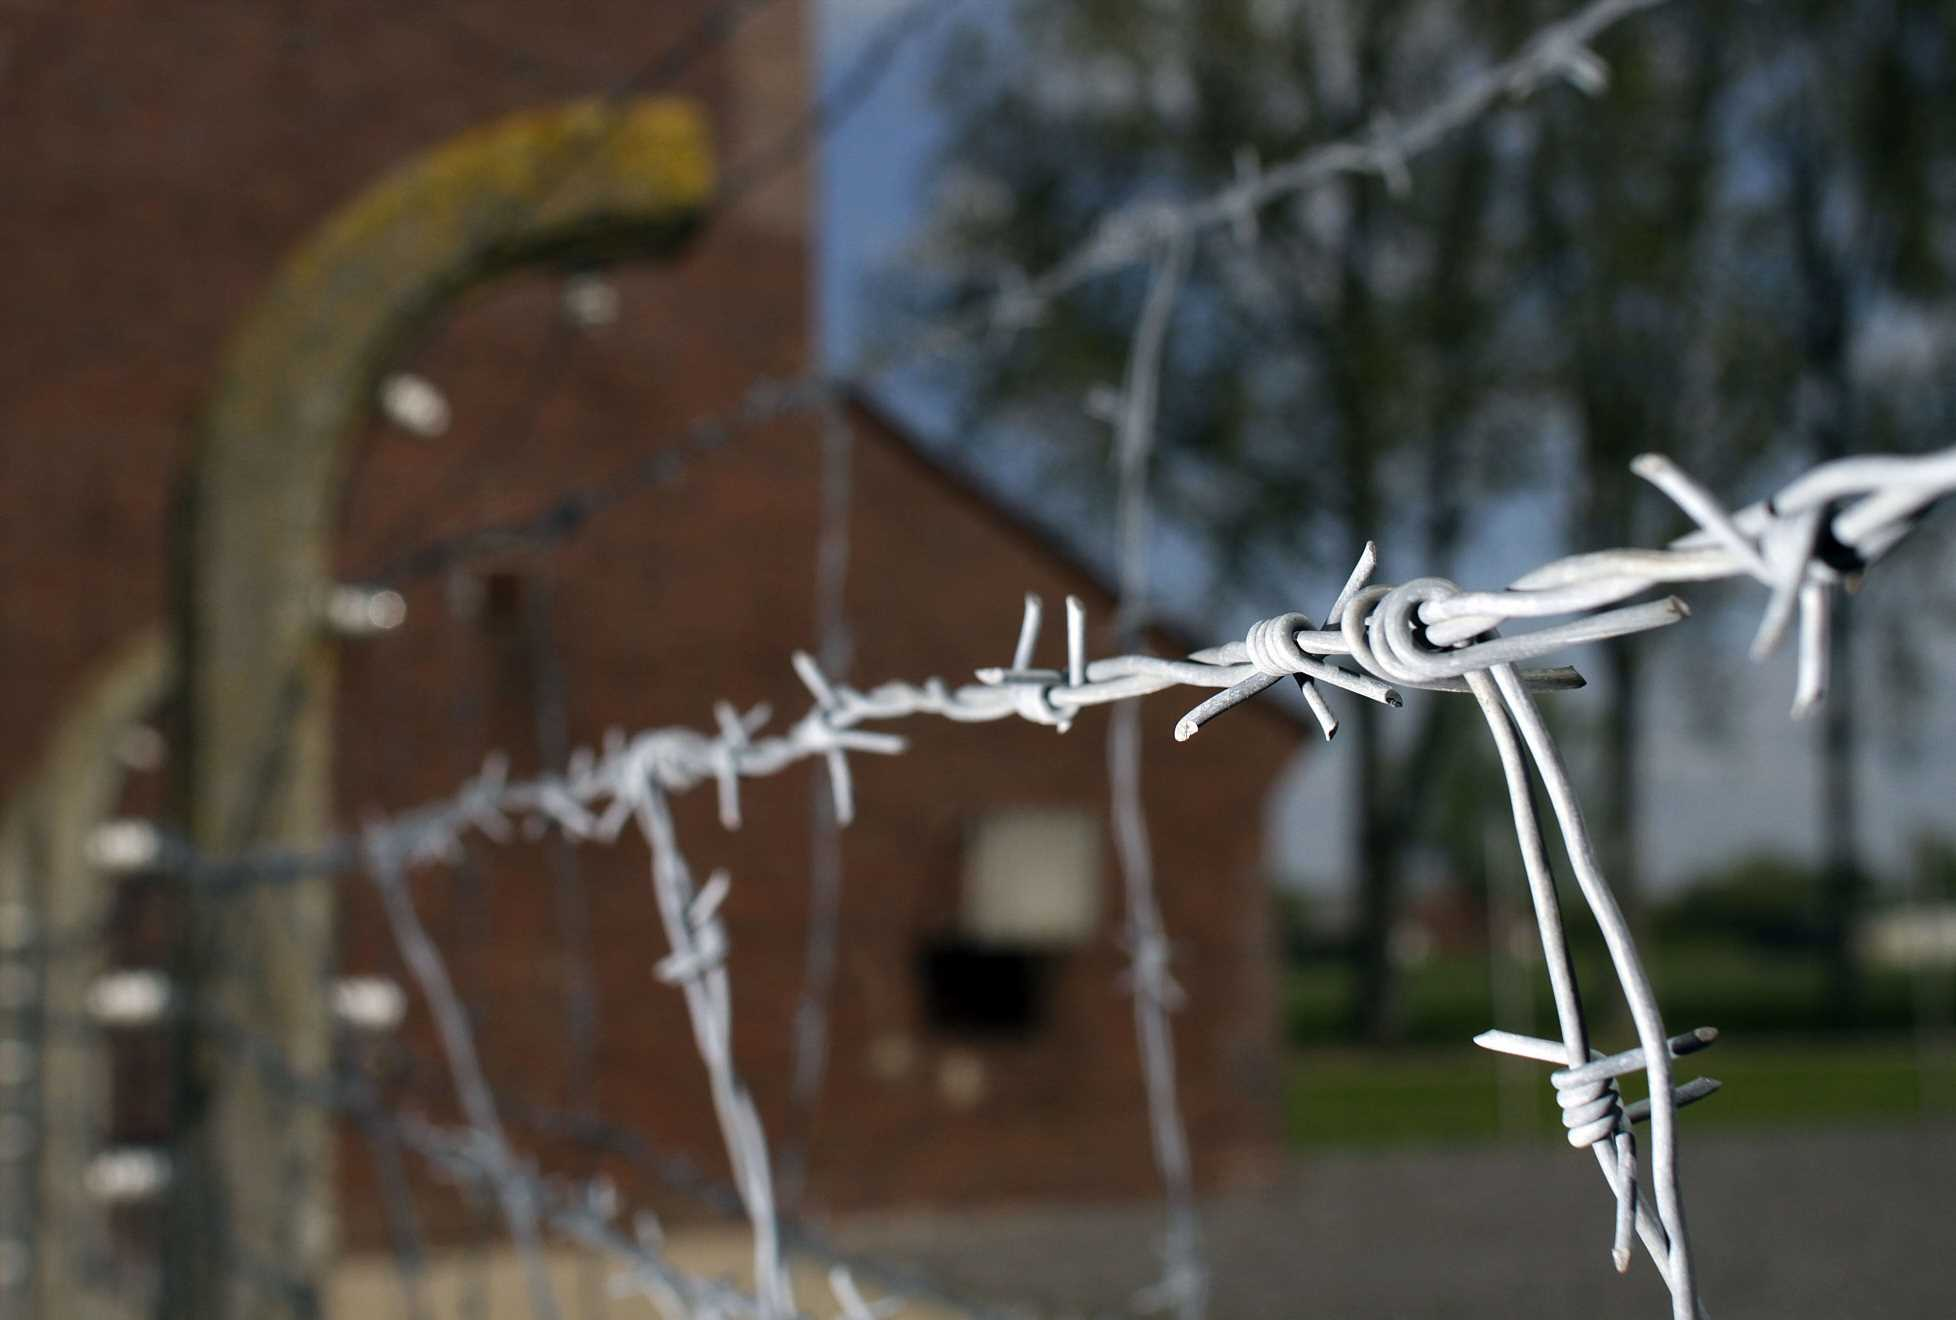 Former Nazi Concentration Camp Guard Ordered Out Of U.S. By Judge